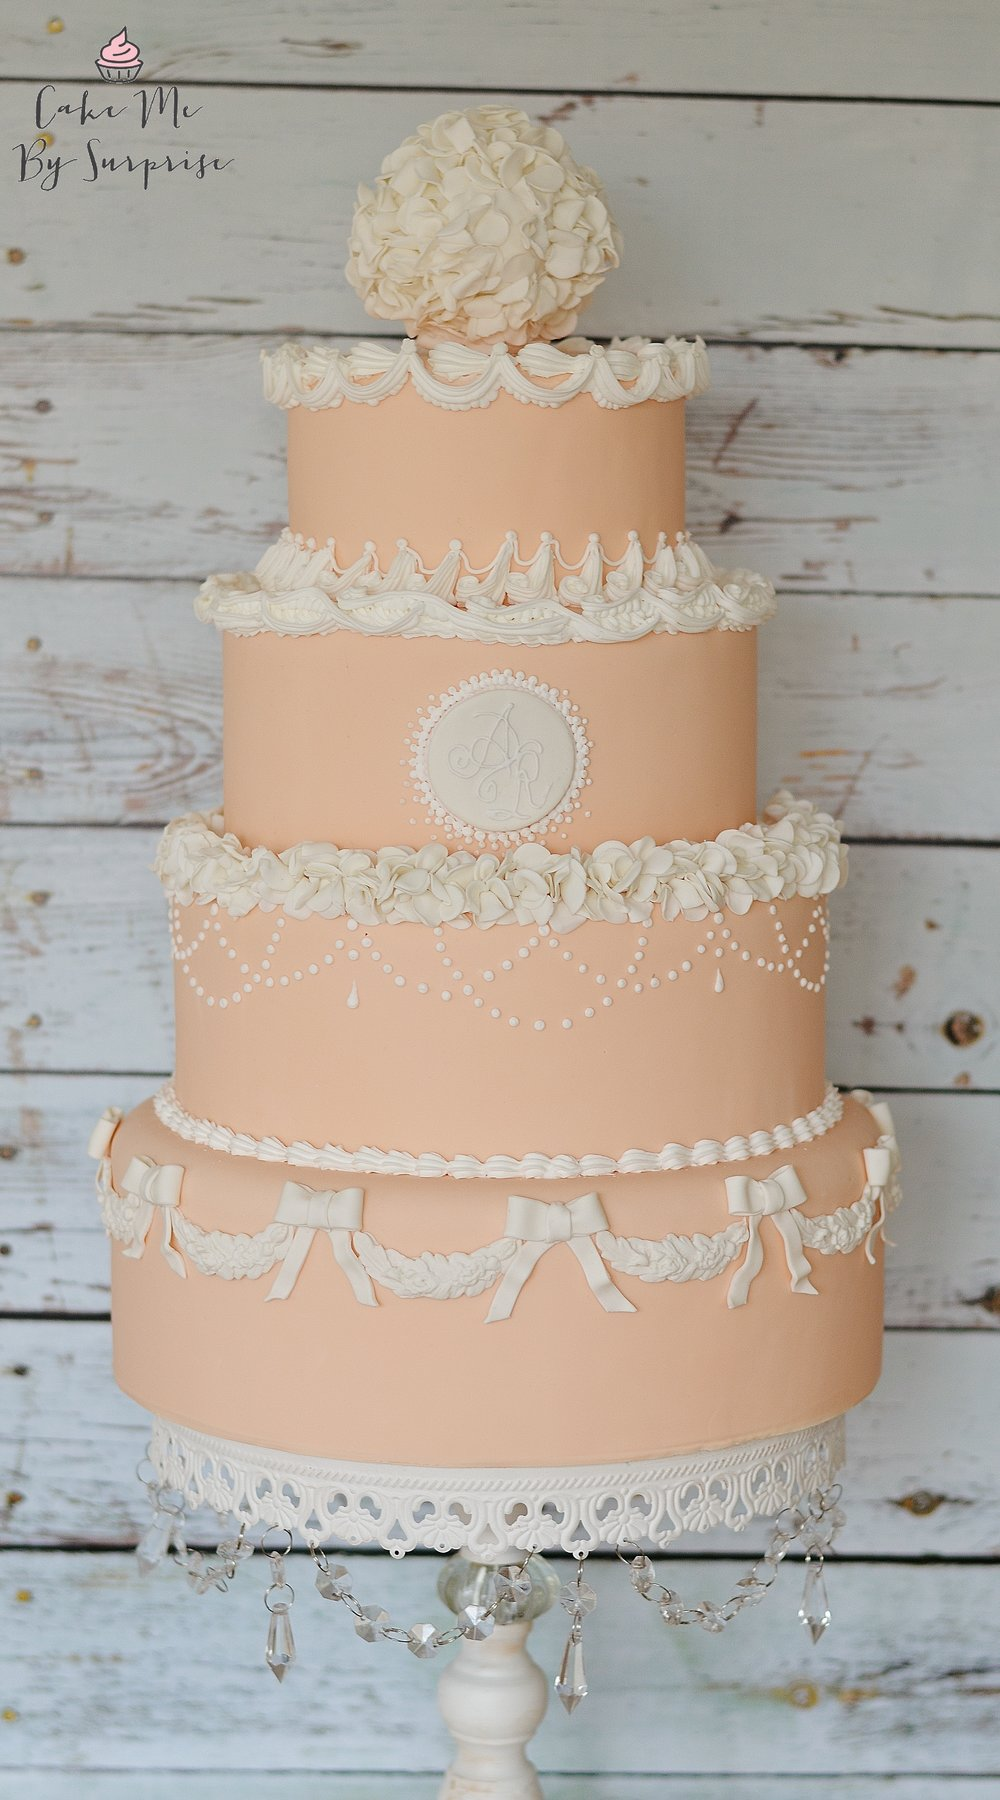 Queen Victoria Inspired Pretty in Peach Inspired by the traditional royal wedding design, this cake features a mix of royal icing piped scrolls and swirls, along side handcrafted sugar bows and ruffles.  Serves 200+ £815